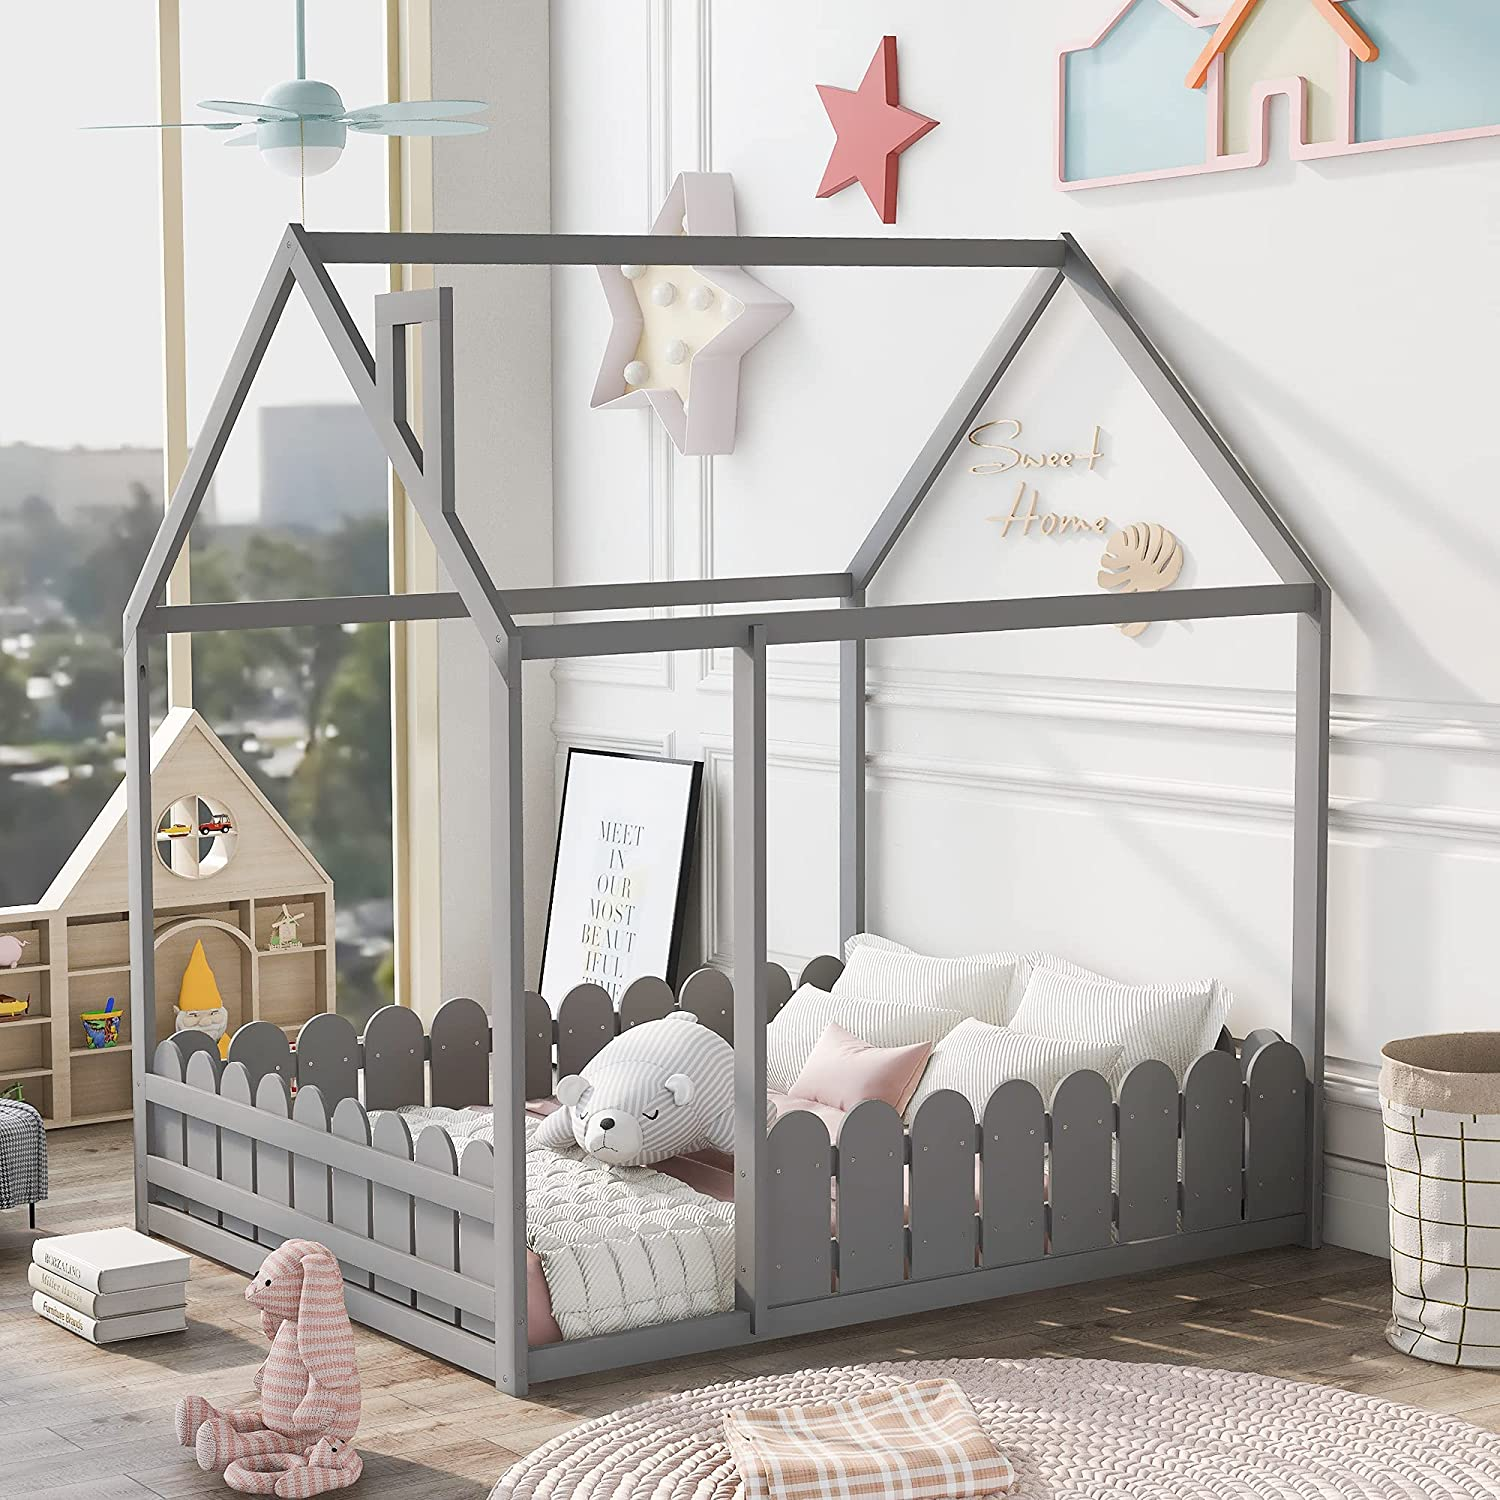 Large discharge sale LZ LEISURE ZONE Full House Bed Size Kids B Frame Las Vegas Mall Wood